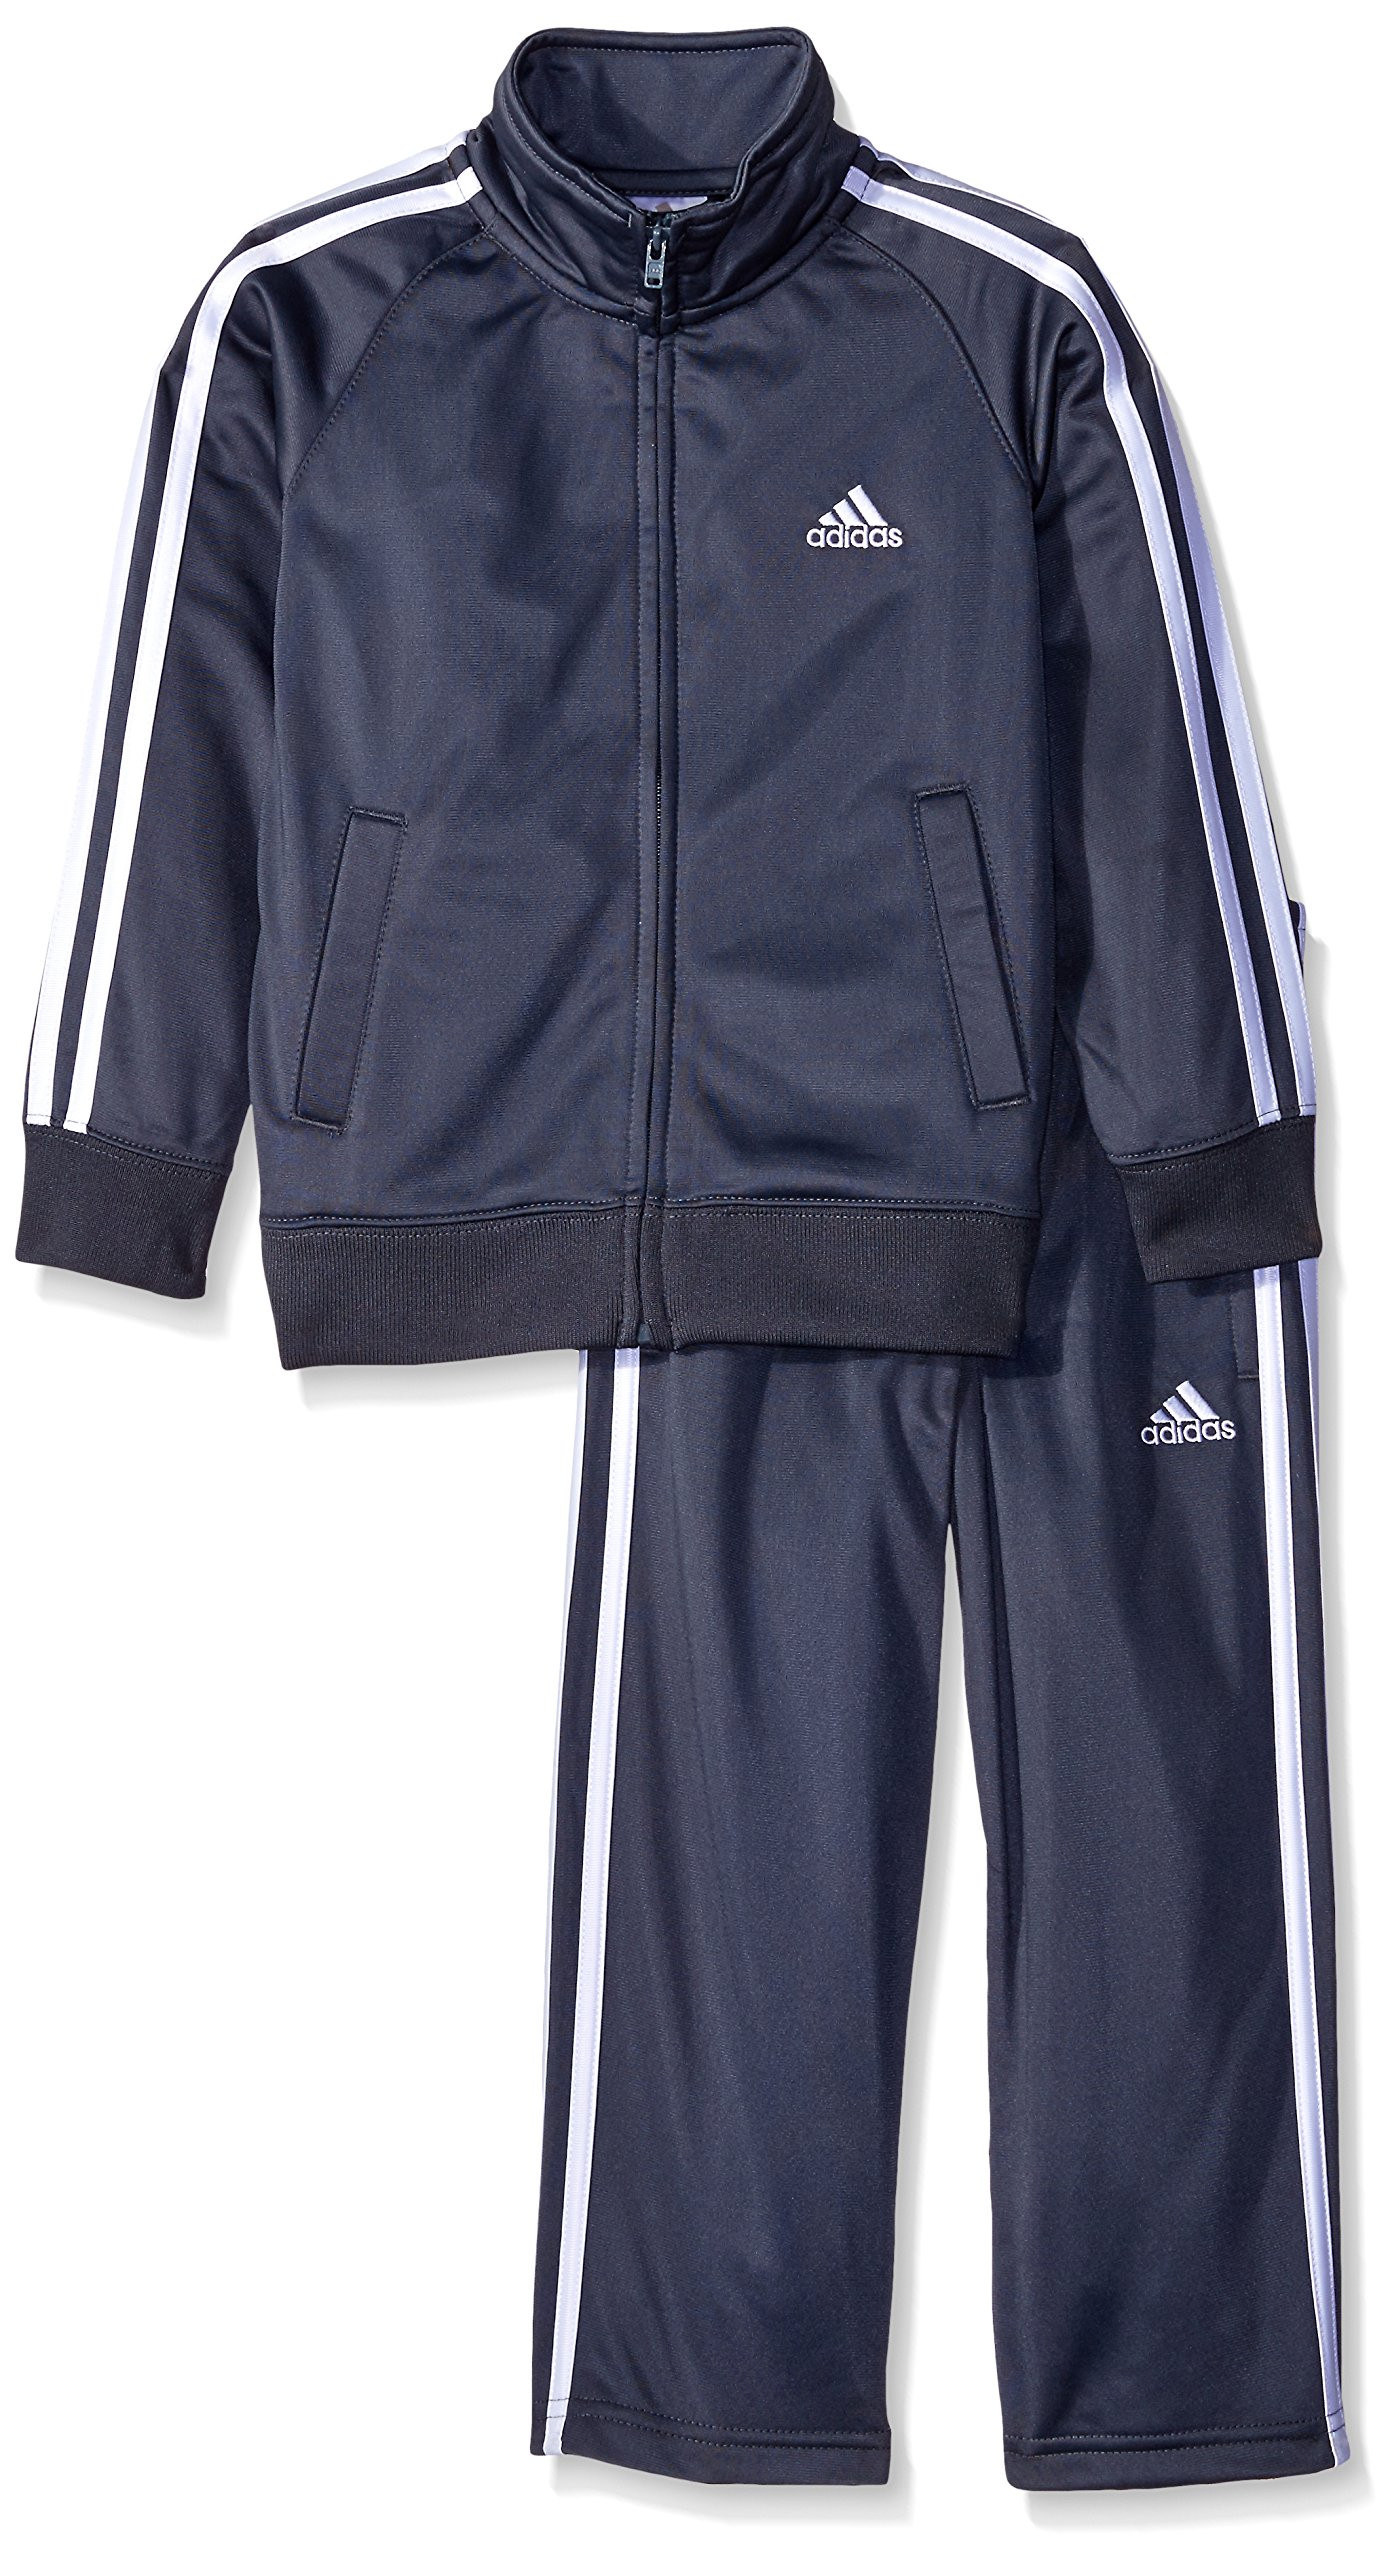 adidas Little Boys' Iconic Tricot Jacket and Pant Set, Grey, 7 by adidas